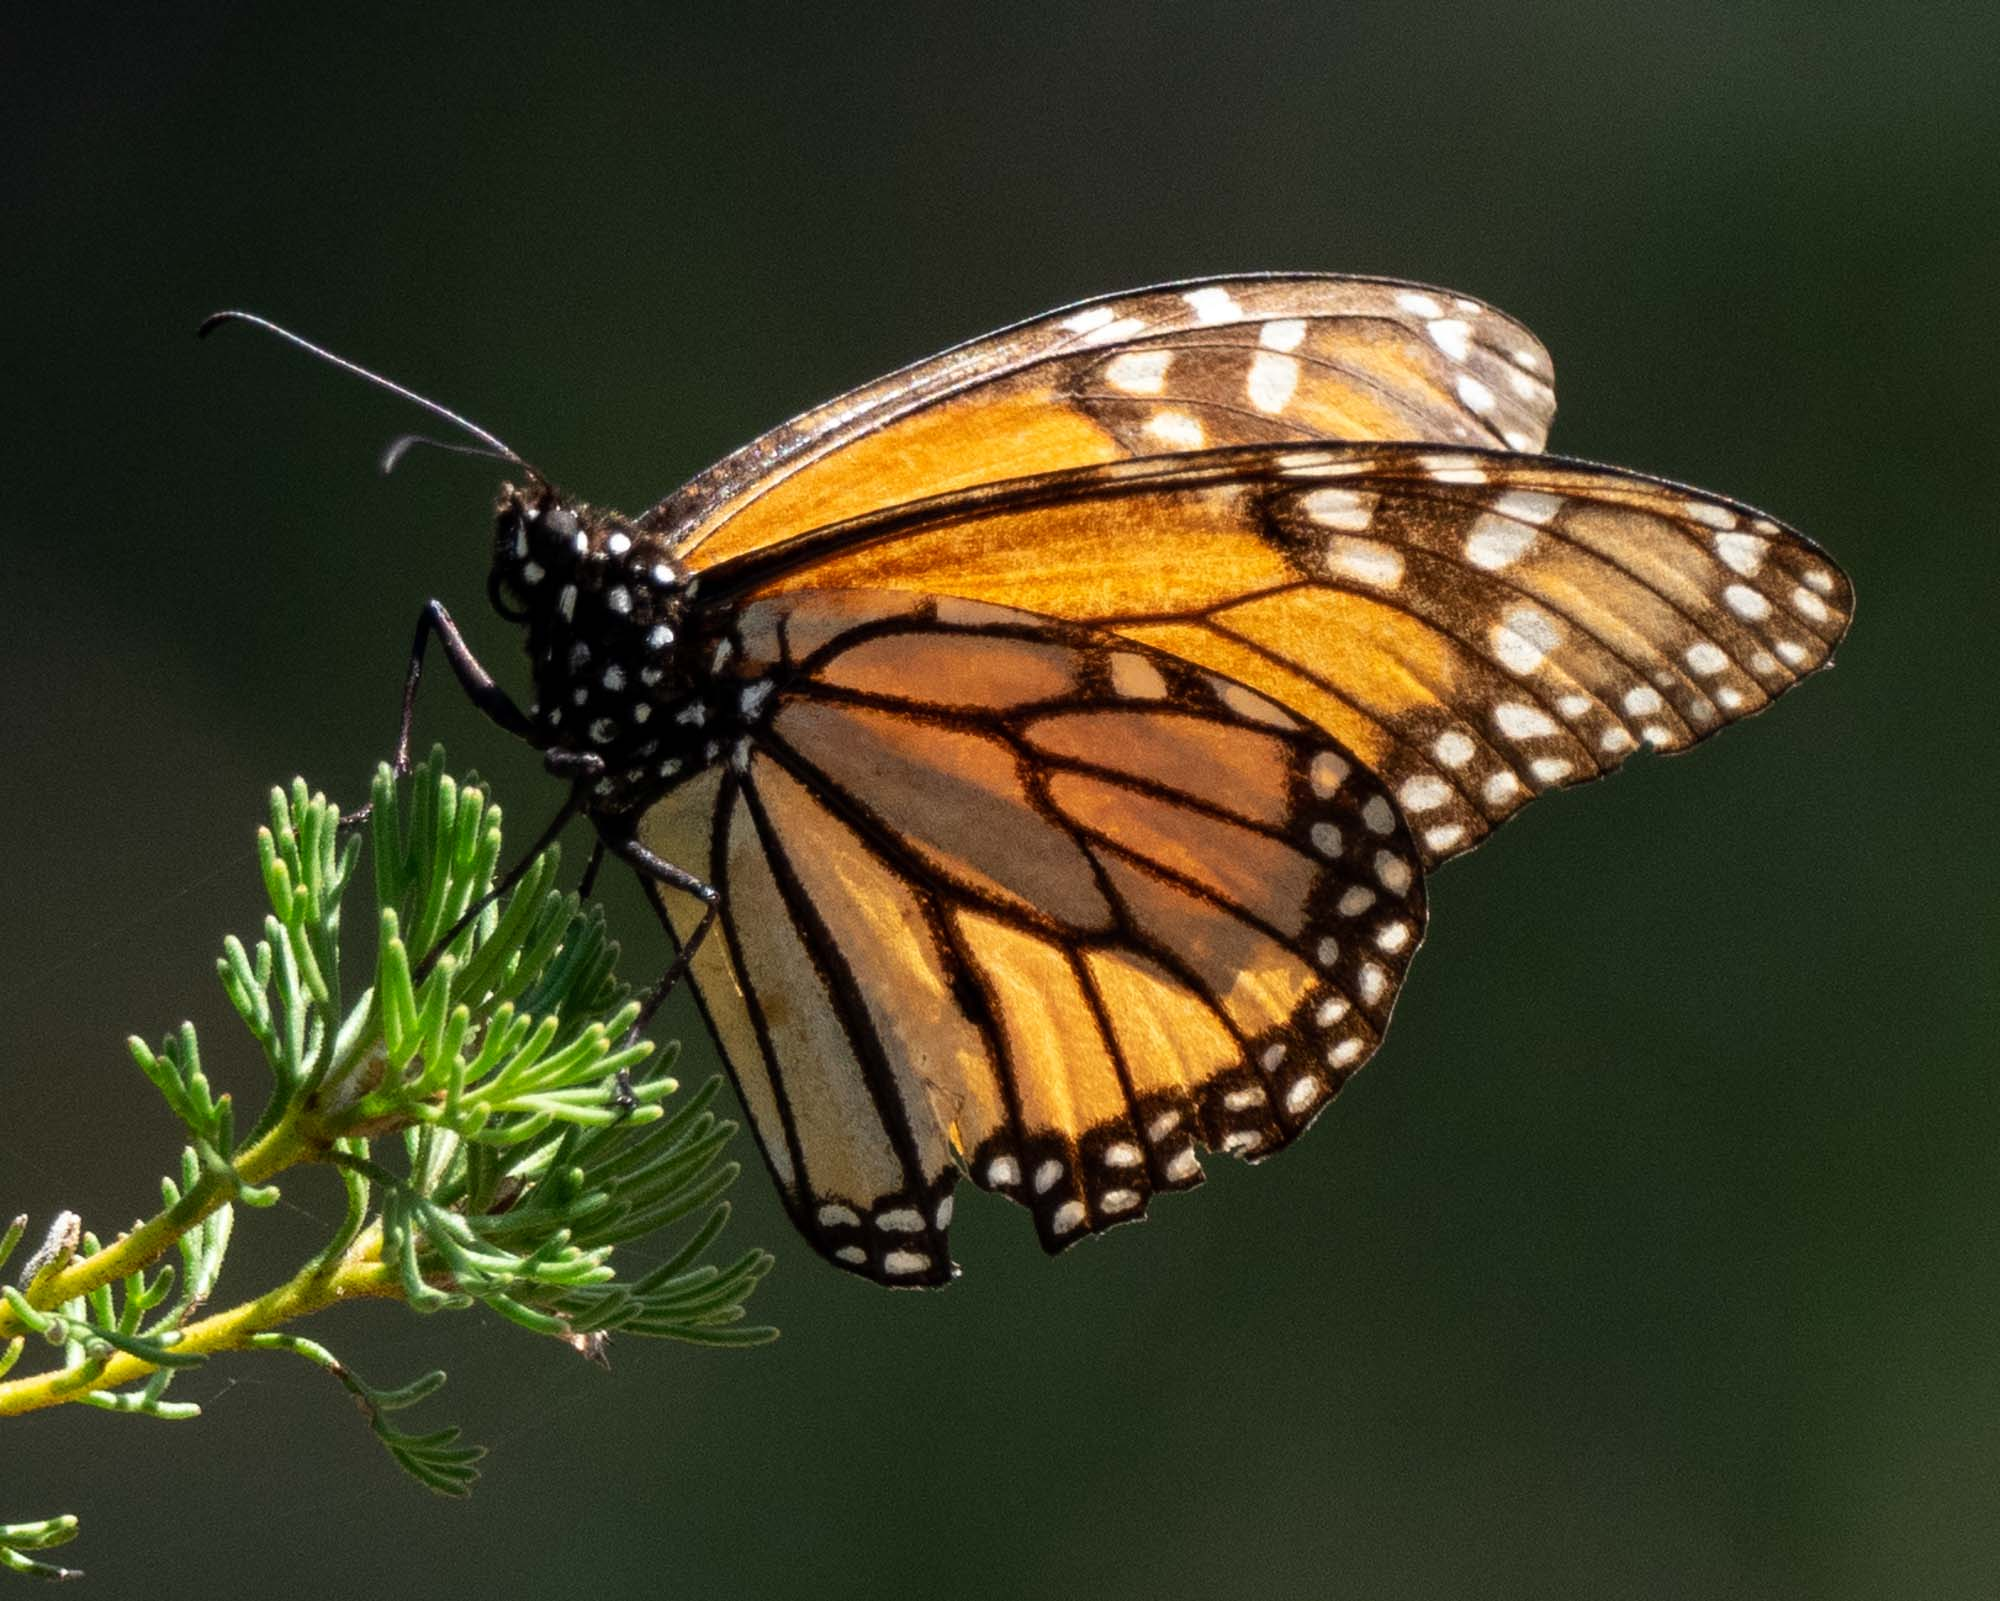 a lone Wanderer, and our first real butterfly sighting! (Danaus plexippus)